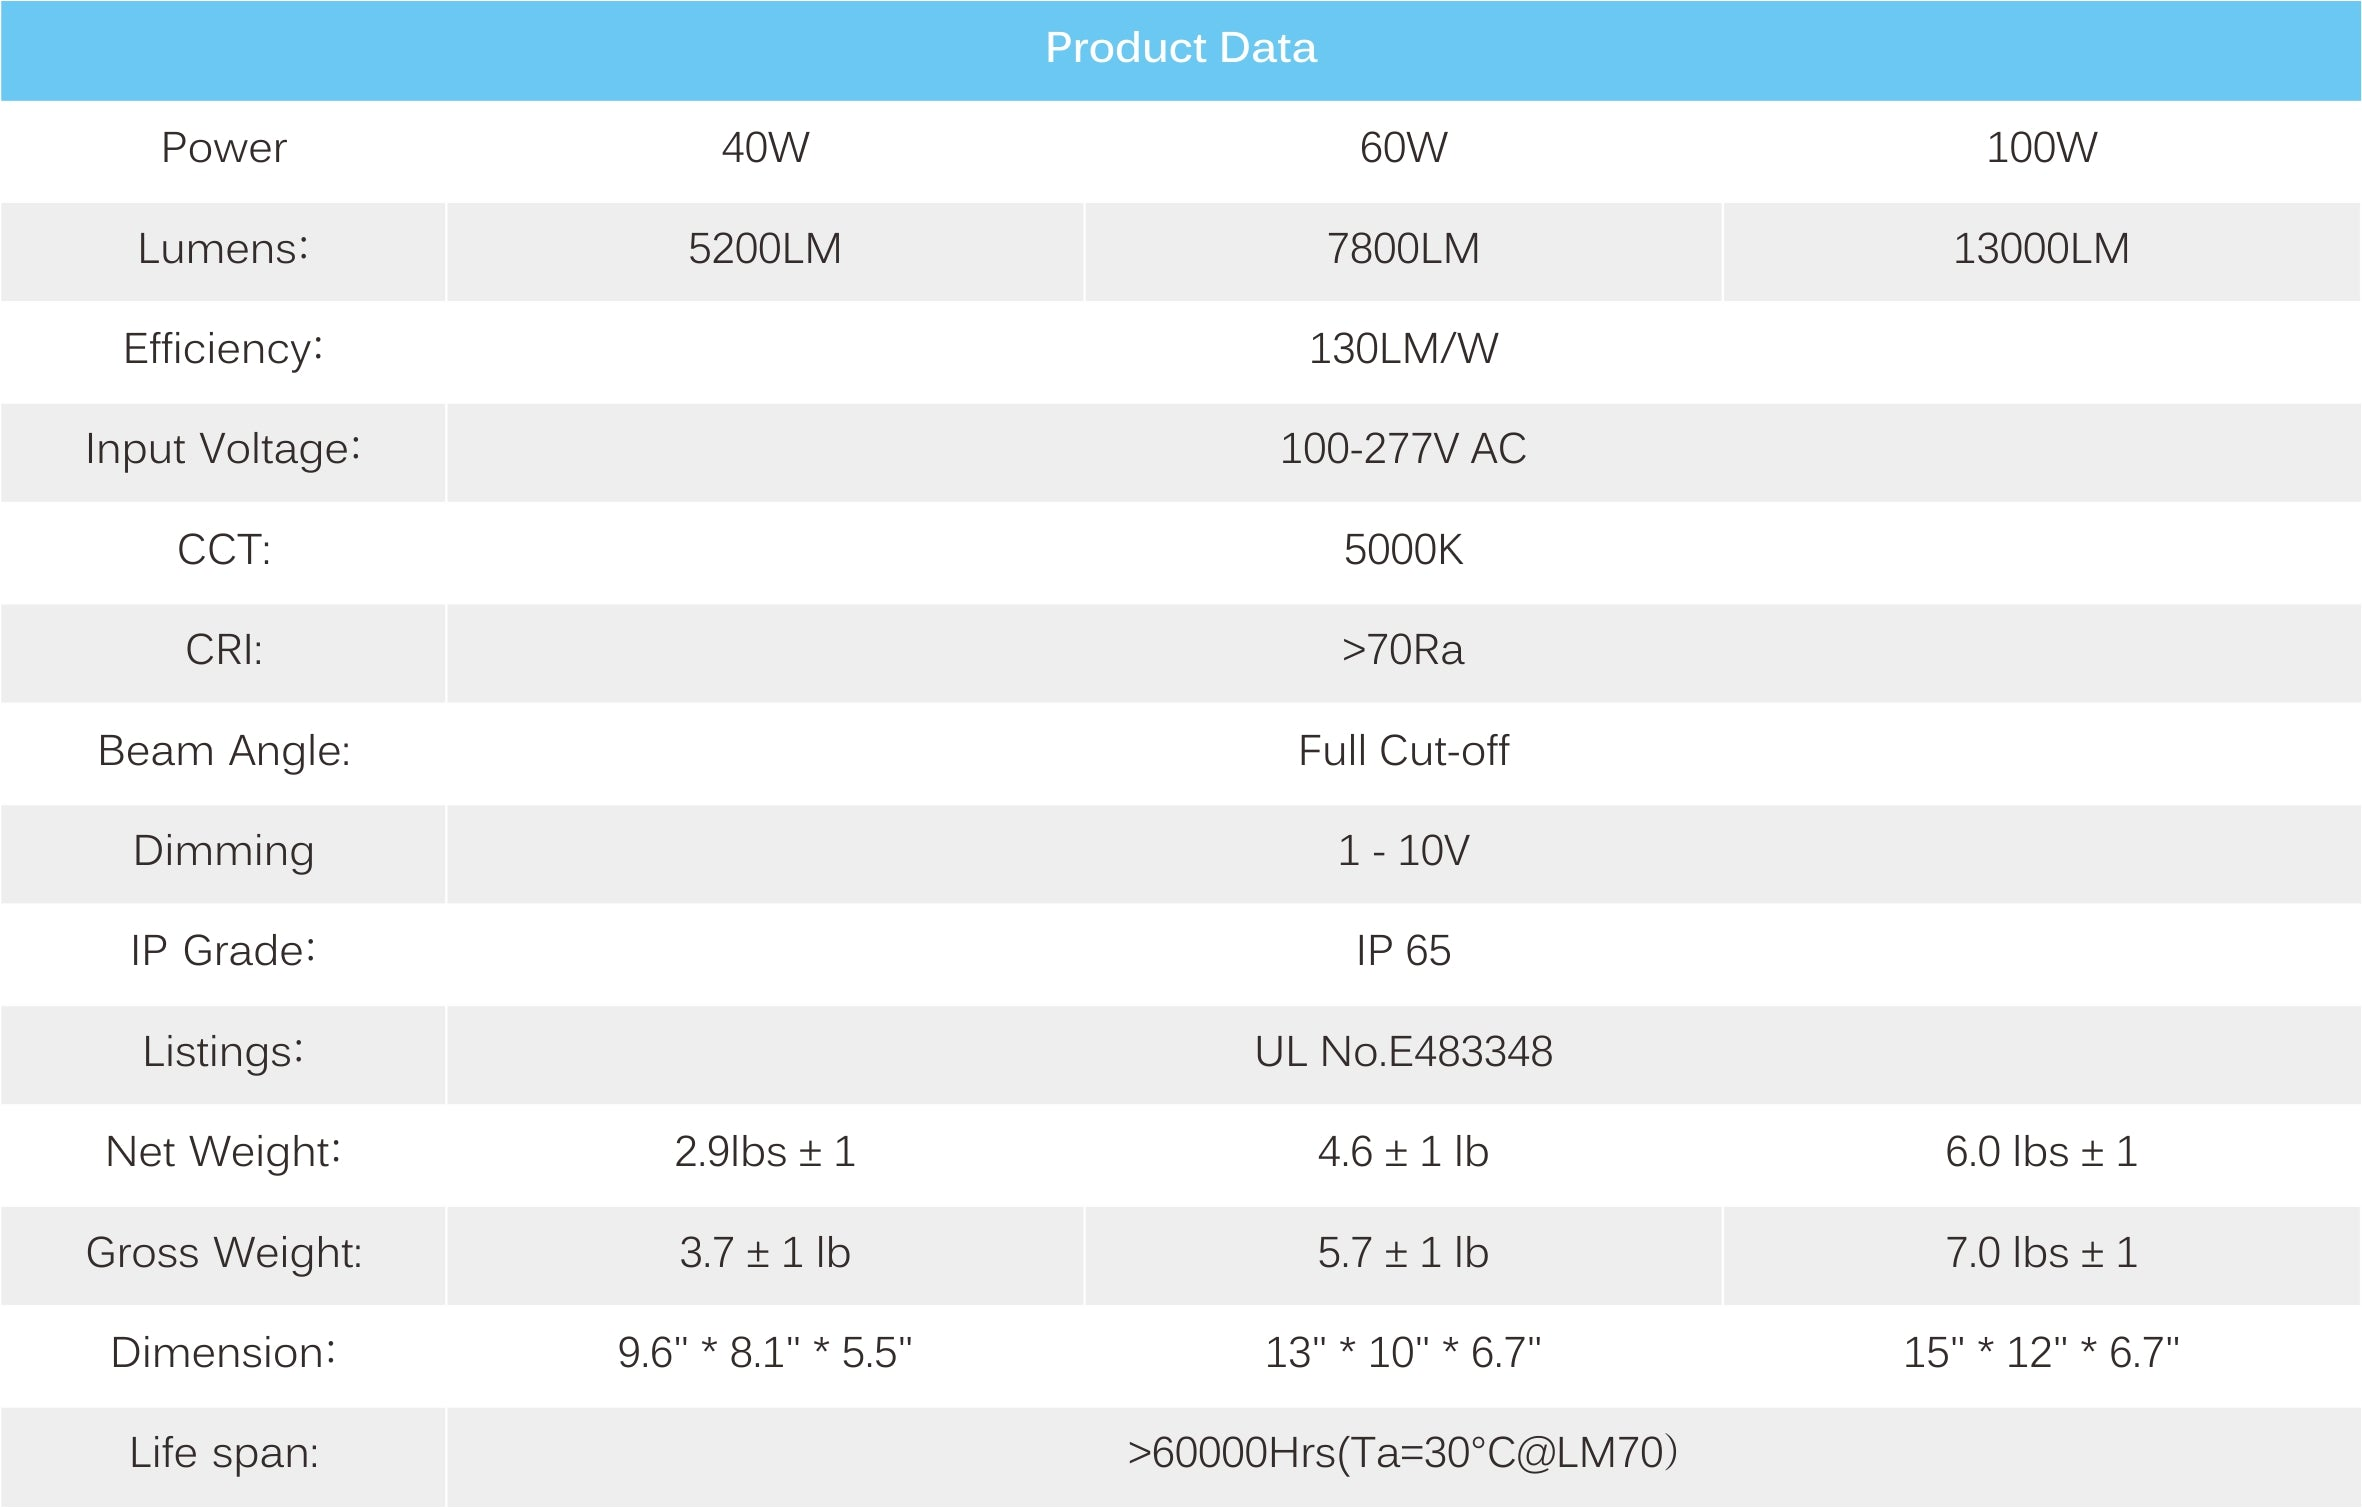 WallE Product sheet